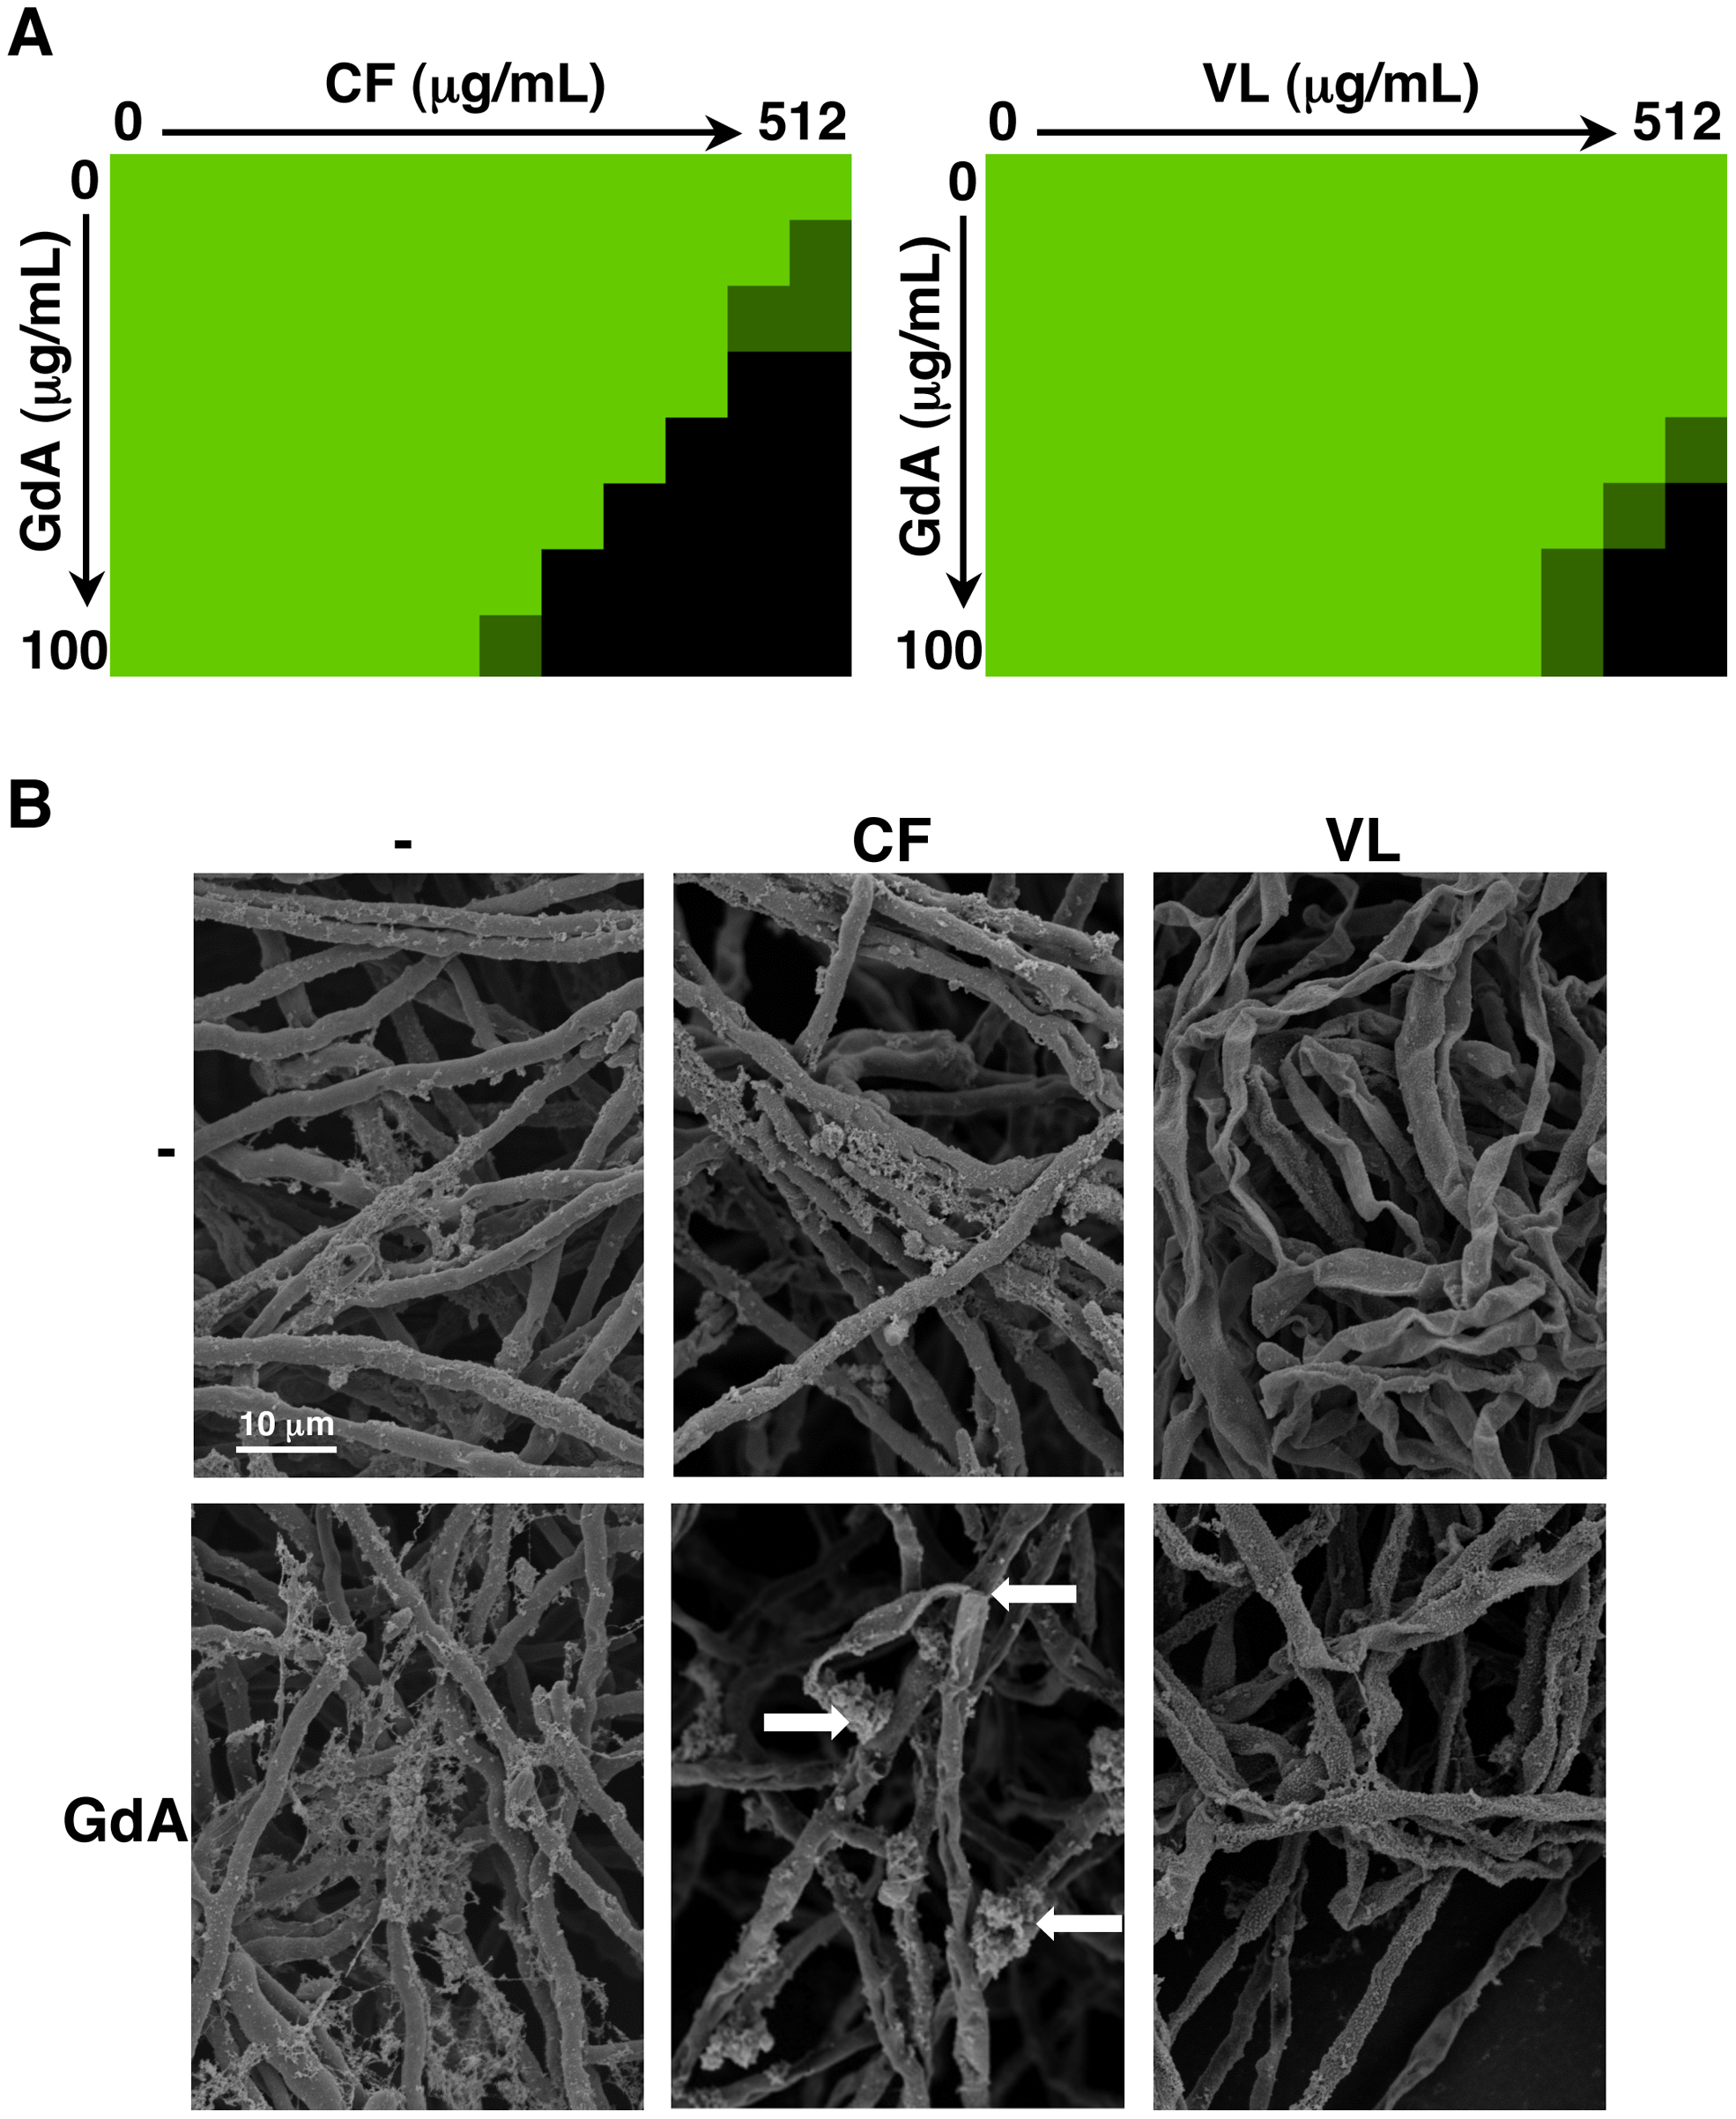 Pharmacological inhibition of Hsp90 enhances the efficacy of echinocandins and azoles against <i>A. fumigatus</i> biofilms and affects biofilm morphology.